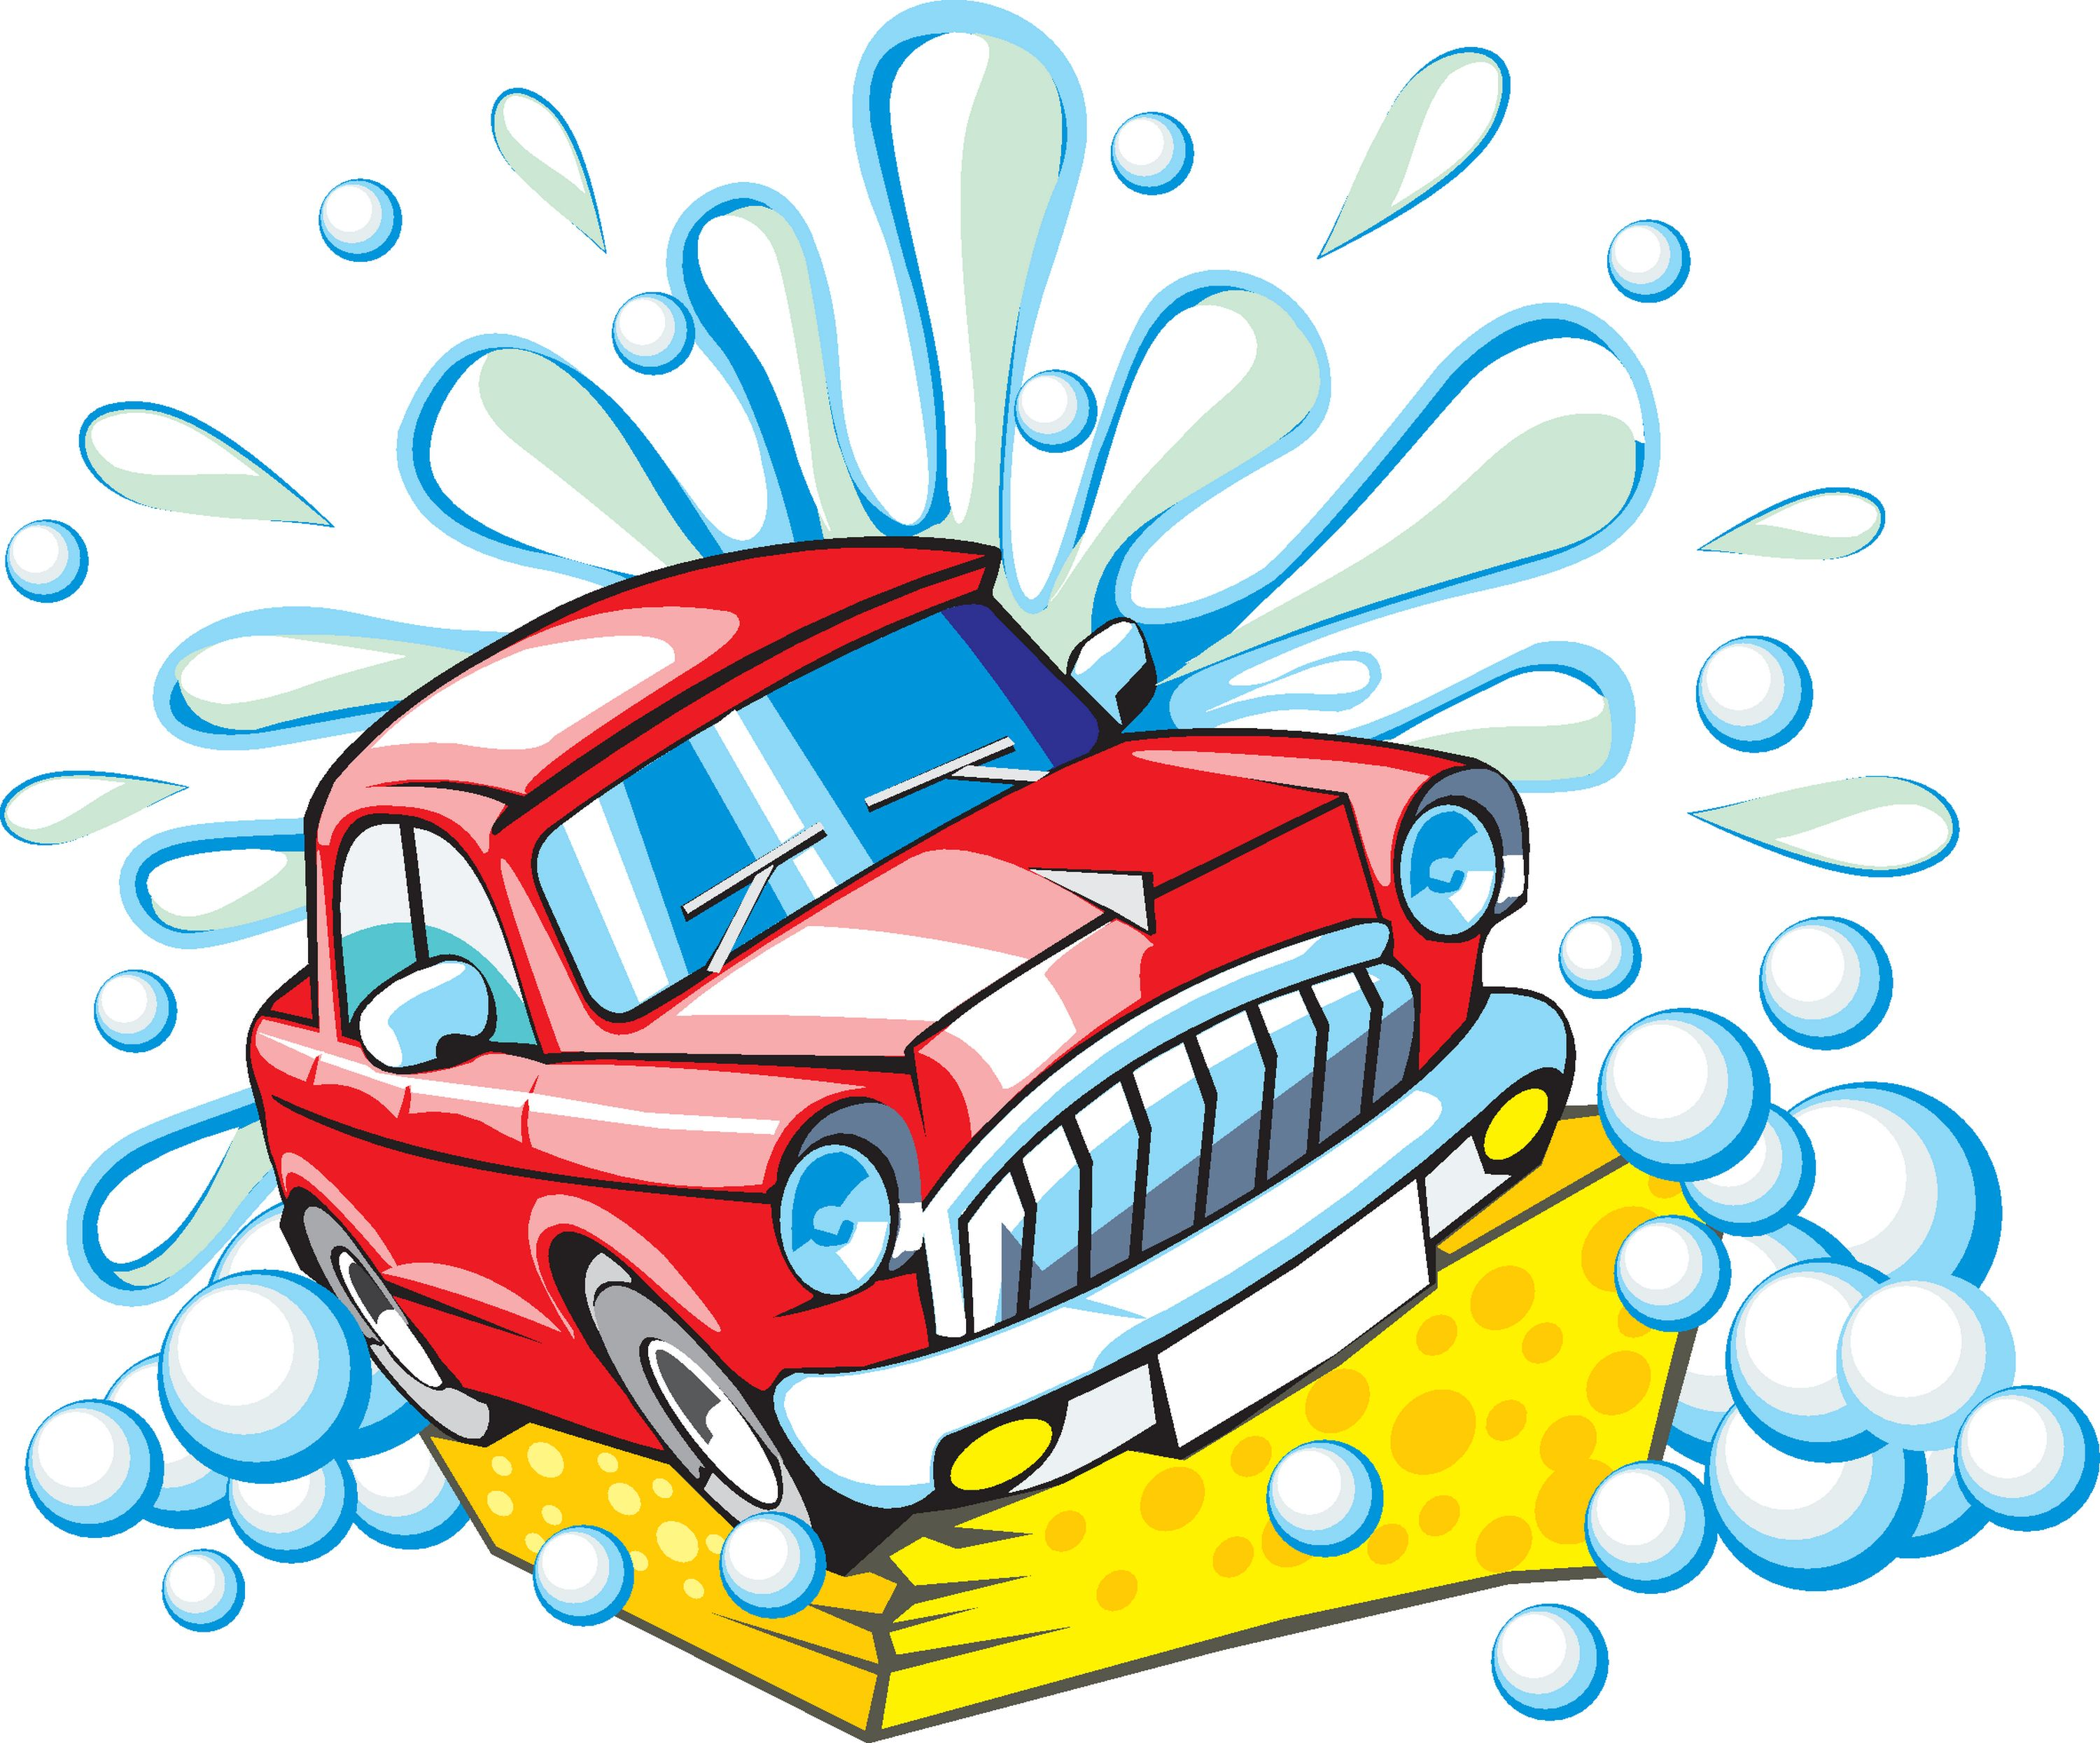 Car wash suds cliparts clipart free library Pin by Cleanoid India on Cleanoid | Car wash posters, Car wash sign ... clipart free library